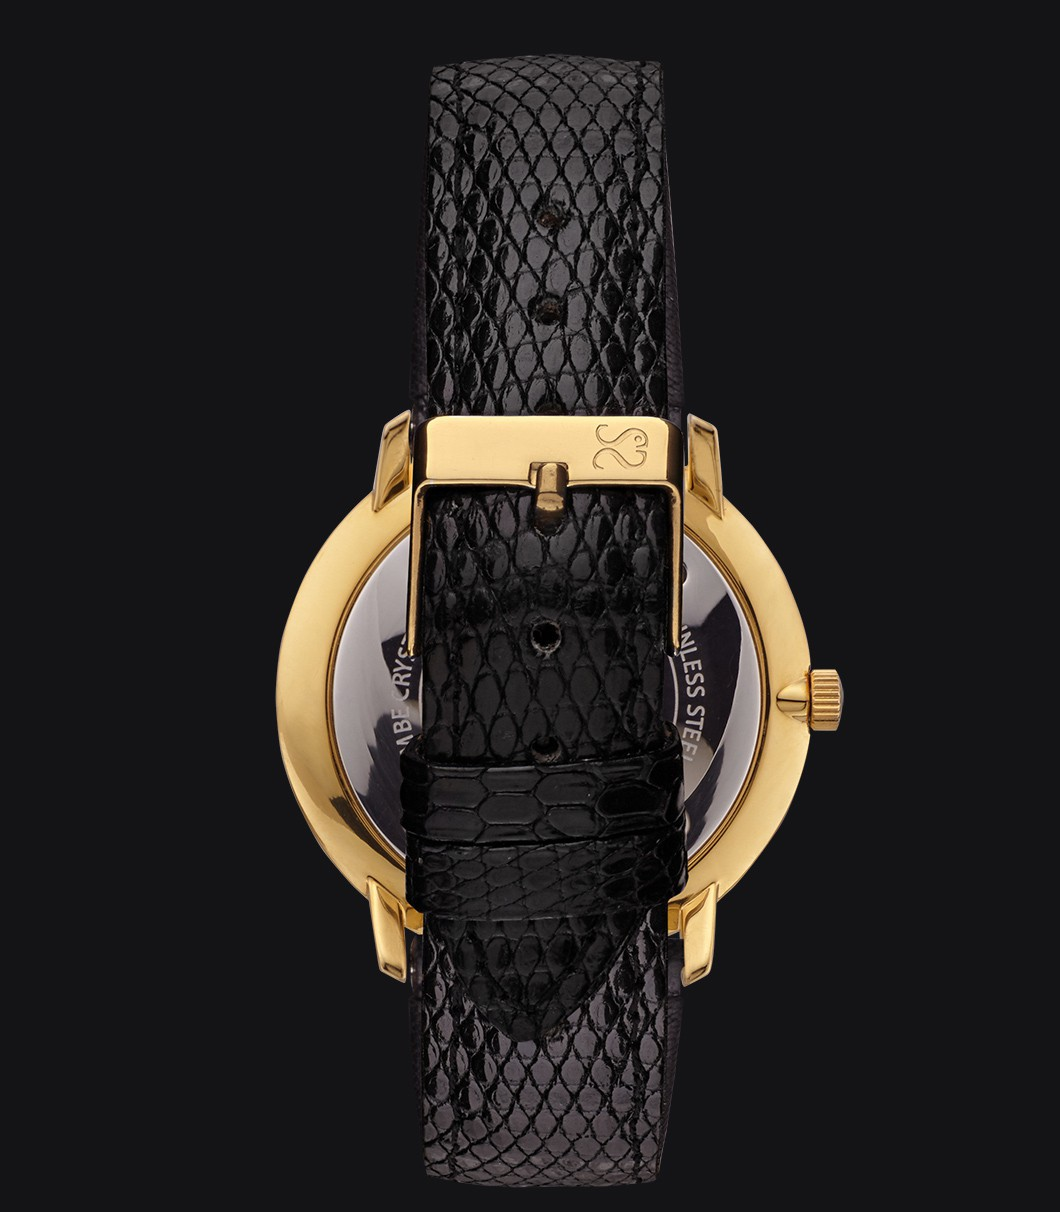 Gold Watch Lizard Fisherman Vintage Elegance Black